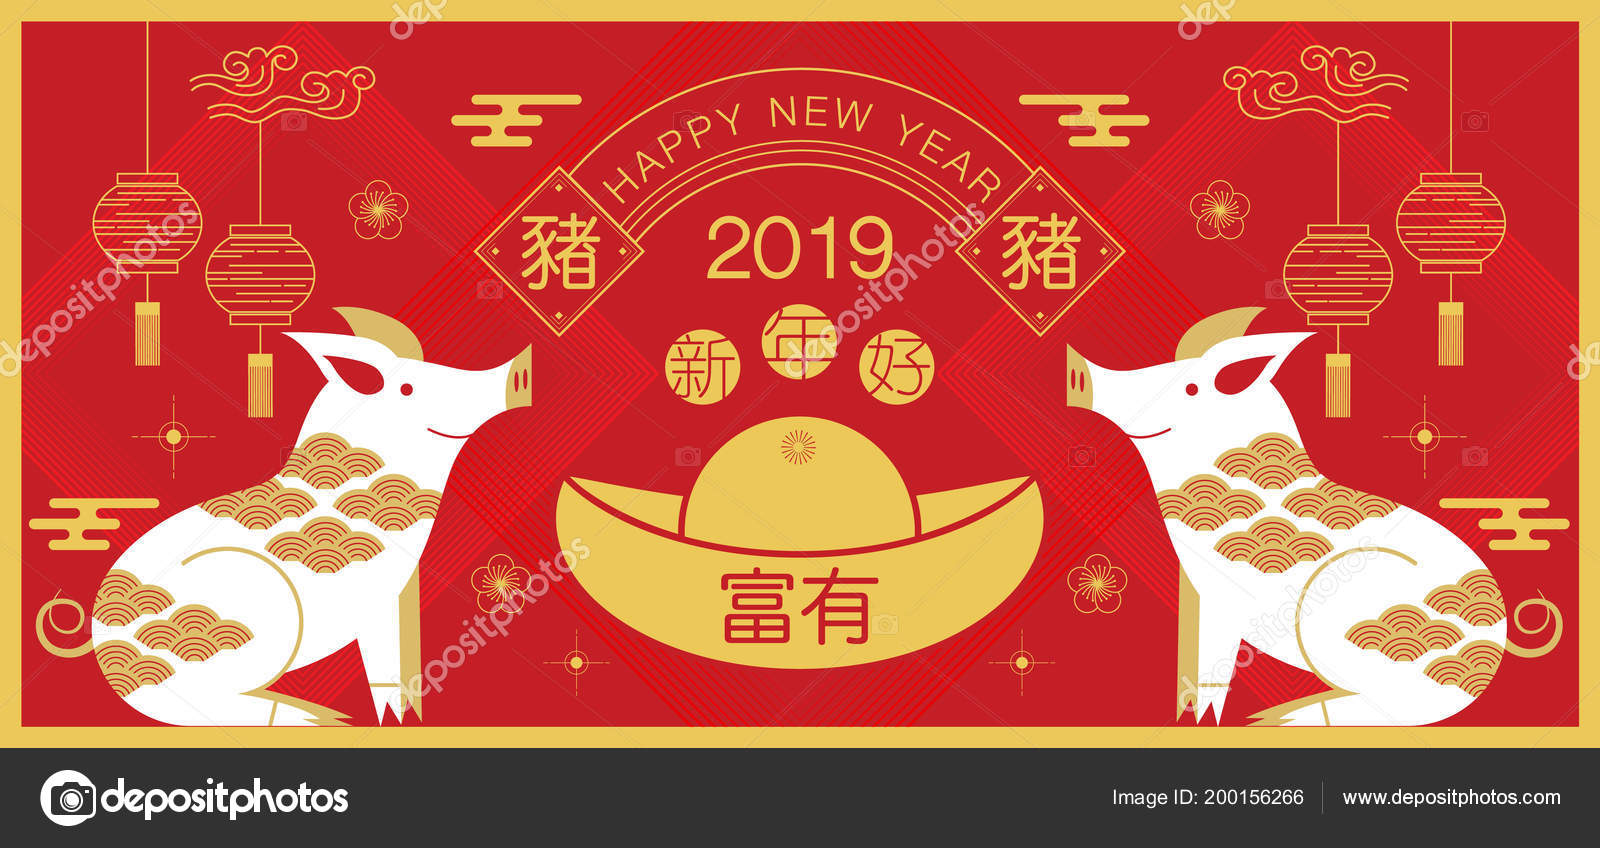 Happy New Year 2019 Chinese New Year Greetings Year Pig